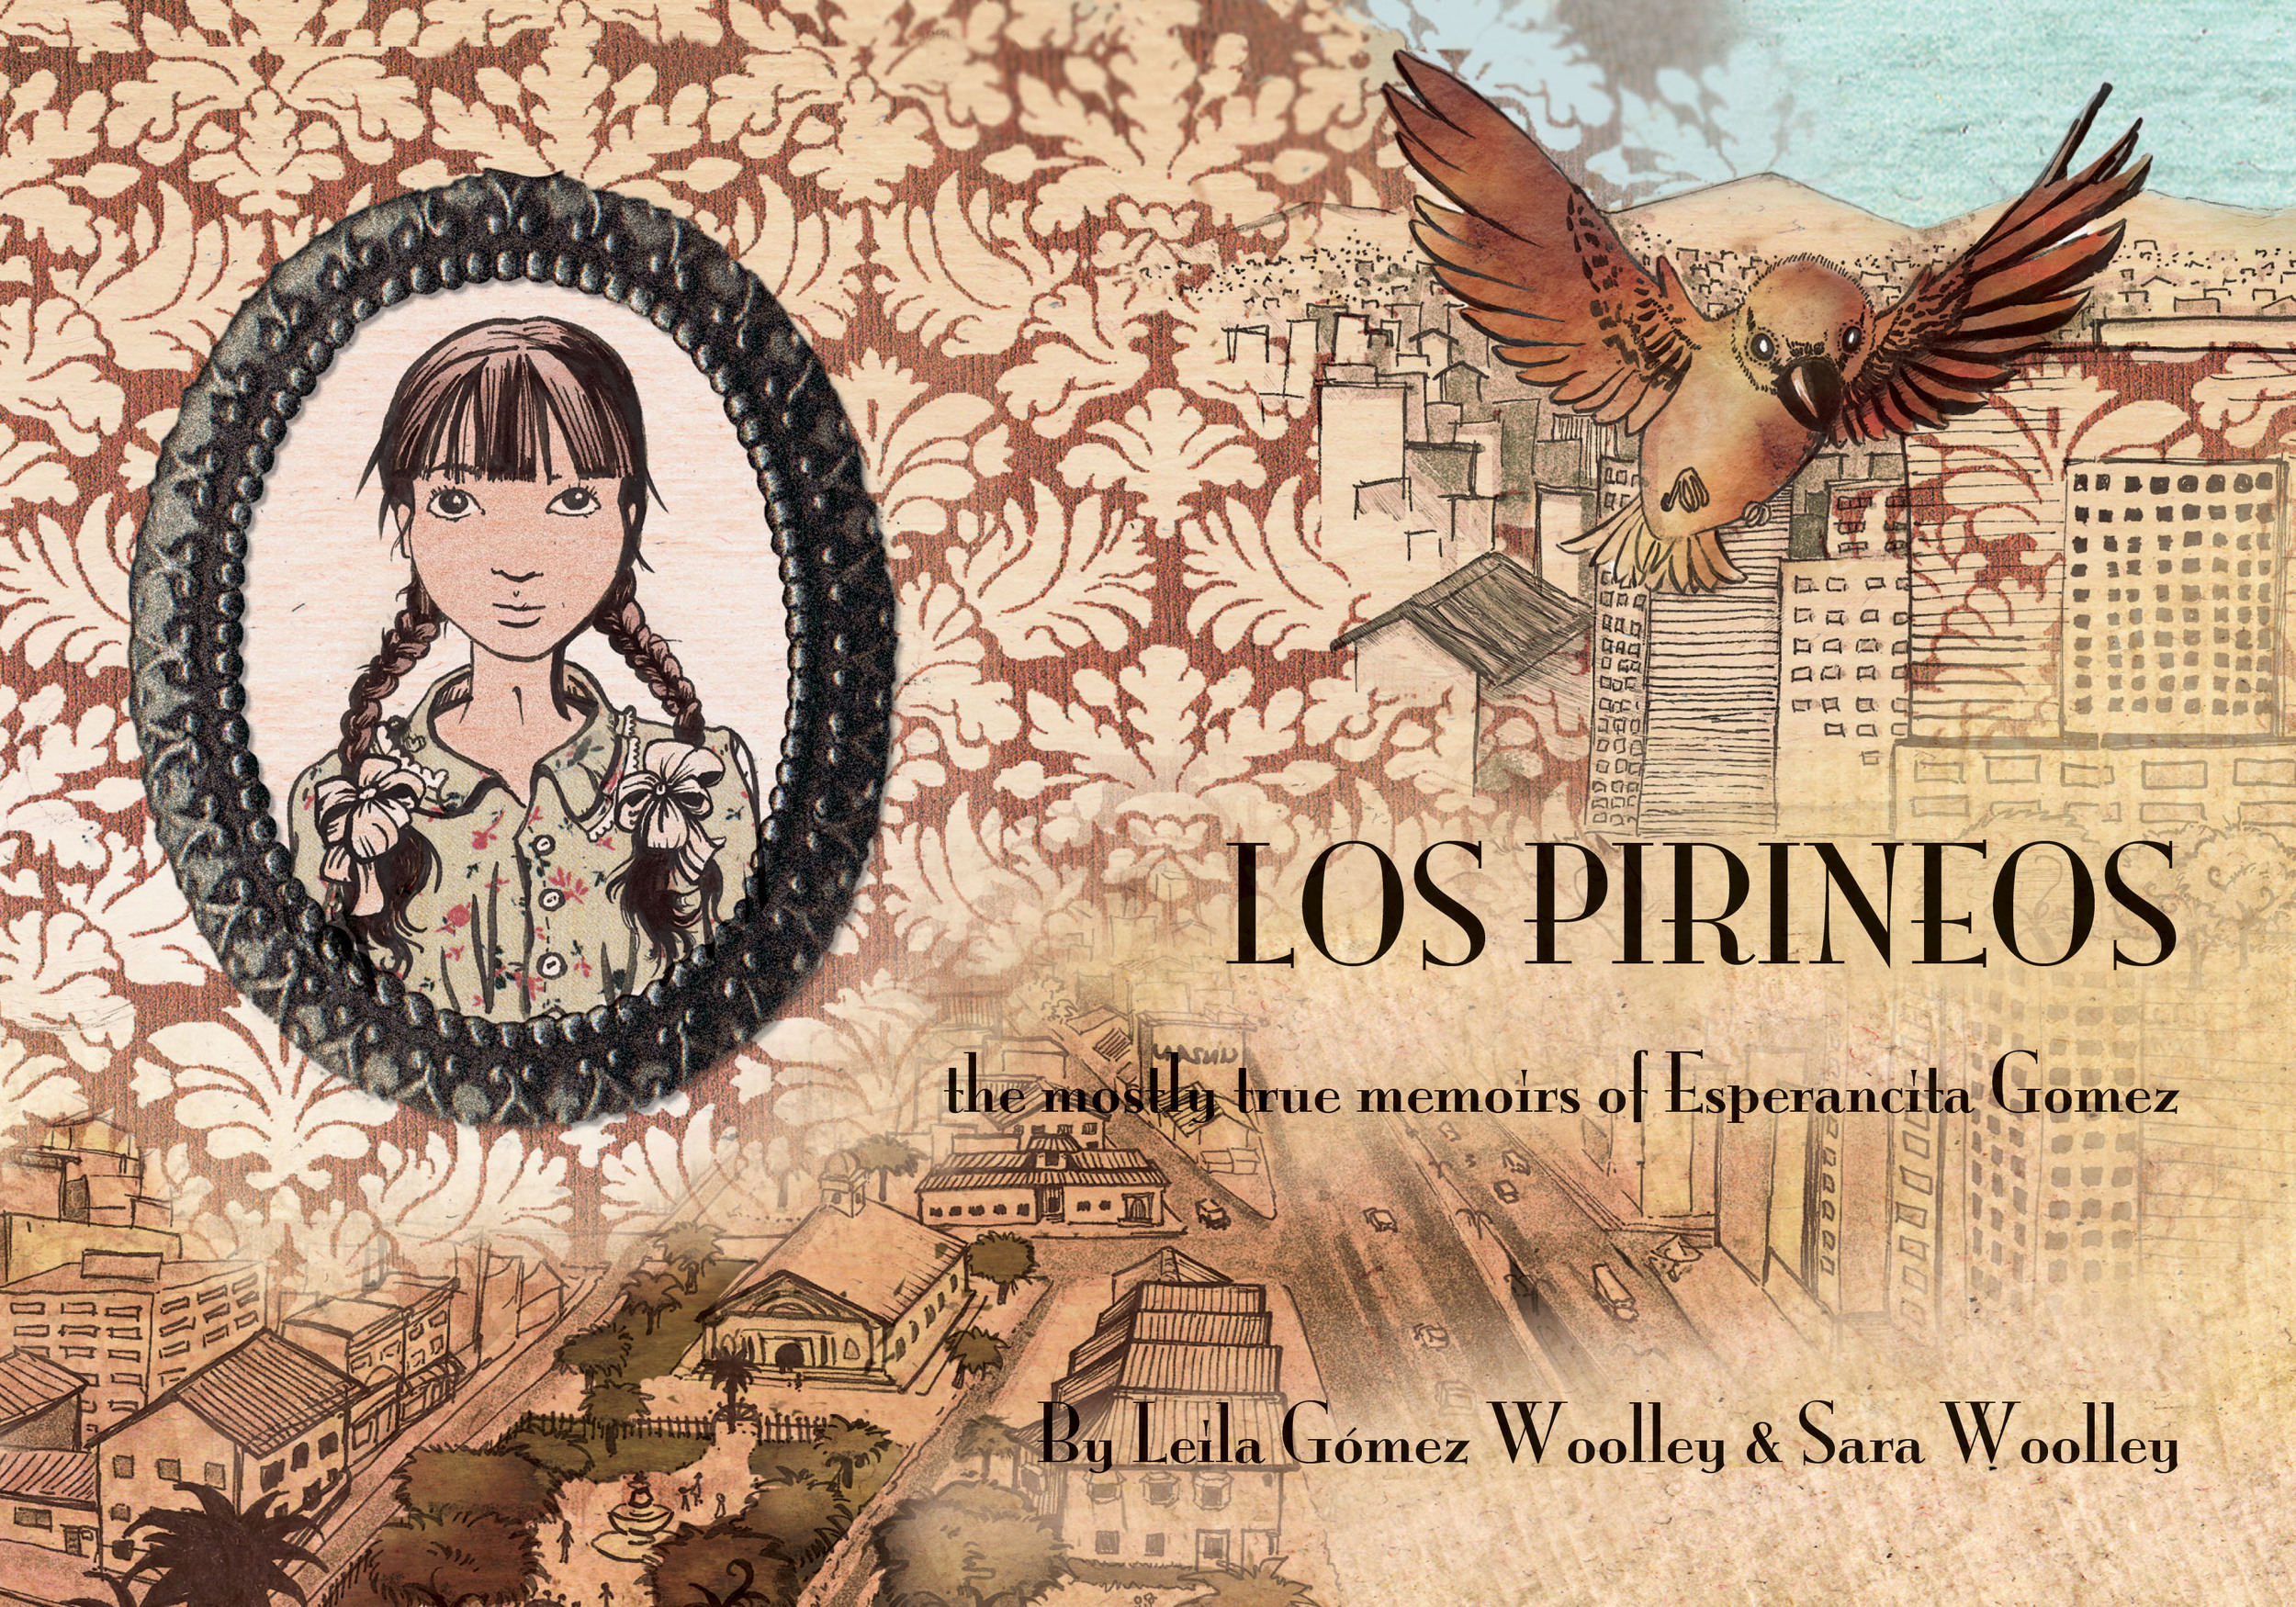 Los Pirineos, the mostly true memoirs of Esperancita Goméz, is a fictionalized graphic memoir written collaboratively with her mother and art partner Leila Gómez Woolley, and singled out for award by the National Association of Latino Arts and Culture.